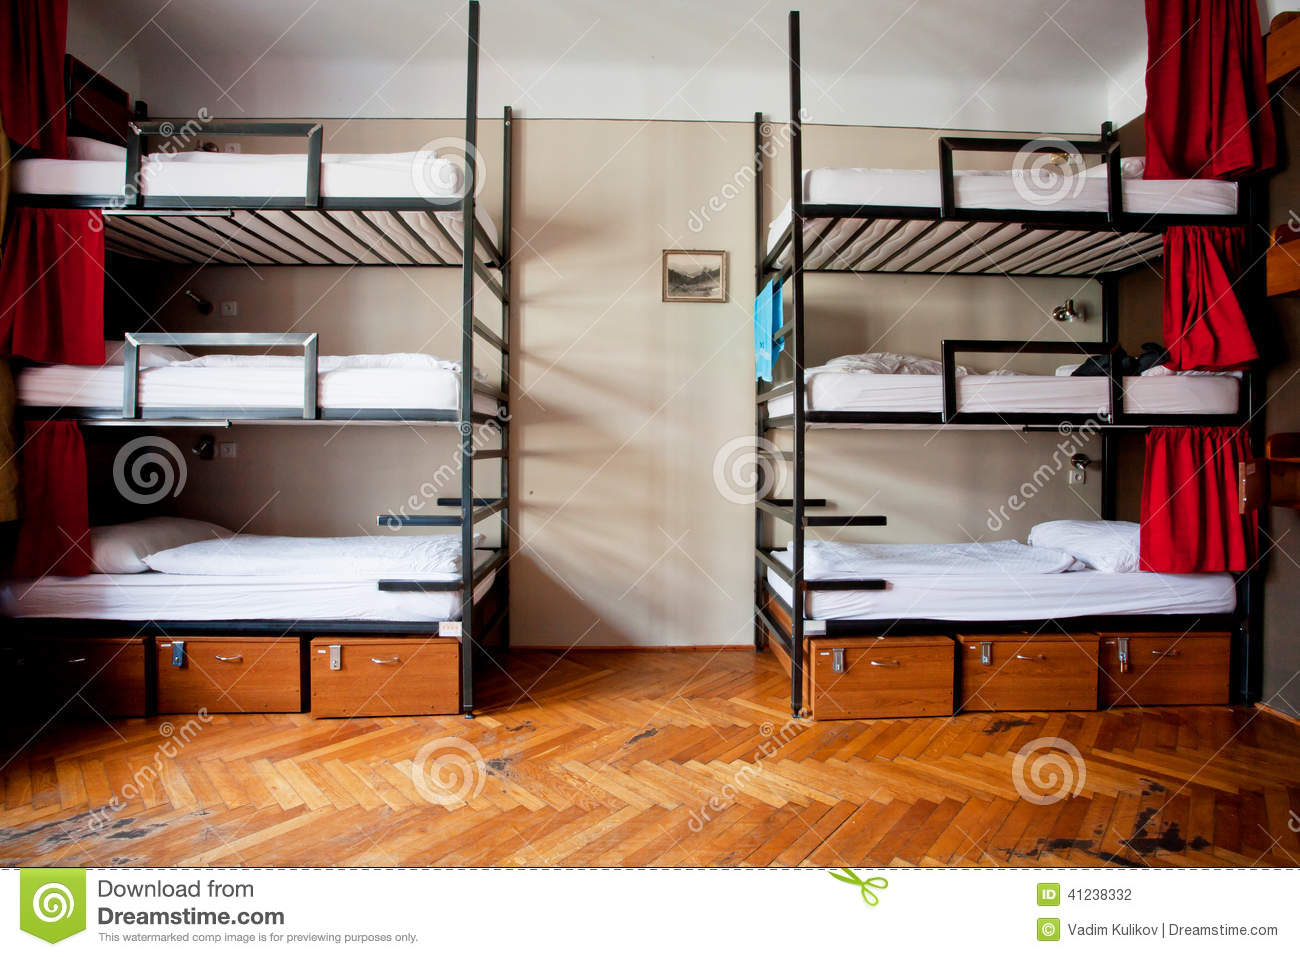 Three Level Dormitory Beds Inside The Hostel Room For Six